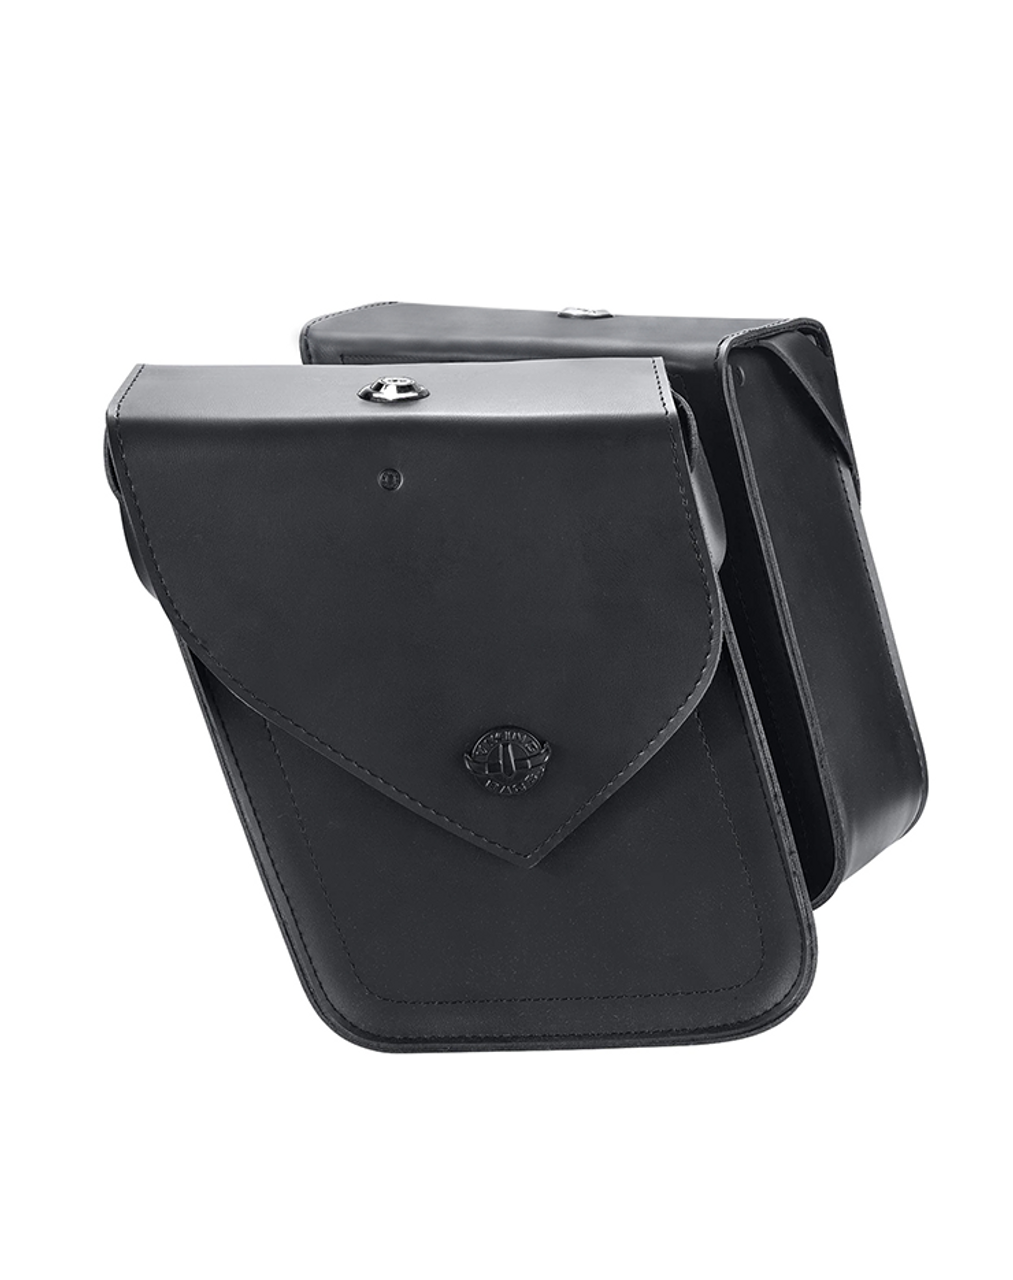 Viking Dark Age Compact Plain Leather Motorcycle Saddlebags For Sportster 1200 Nightster XL1200N Both bag view